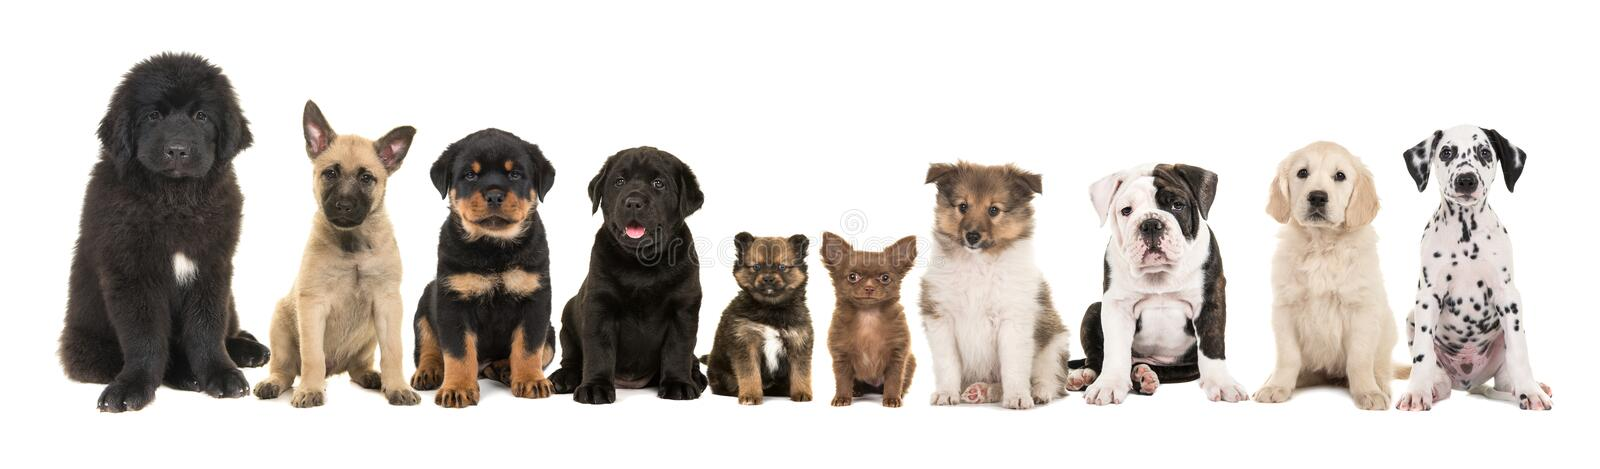 Large group of ten different kind of breed puppies stock image